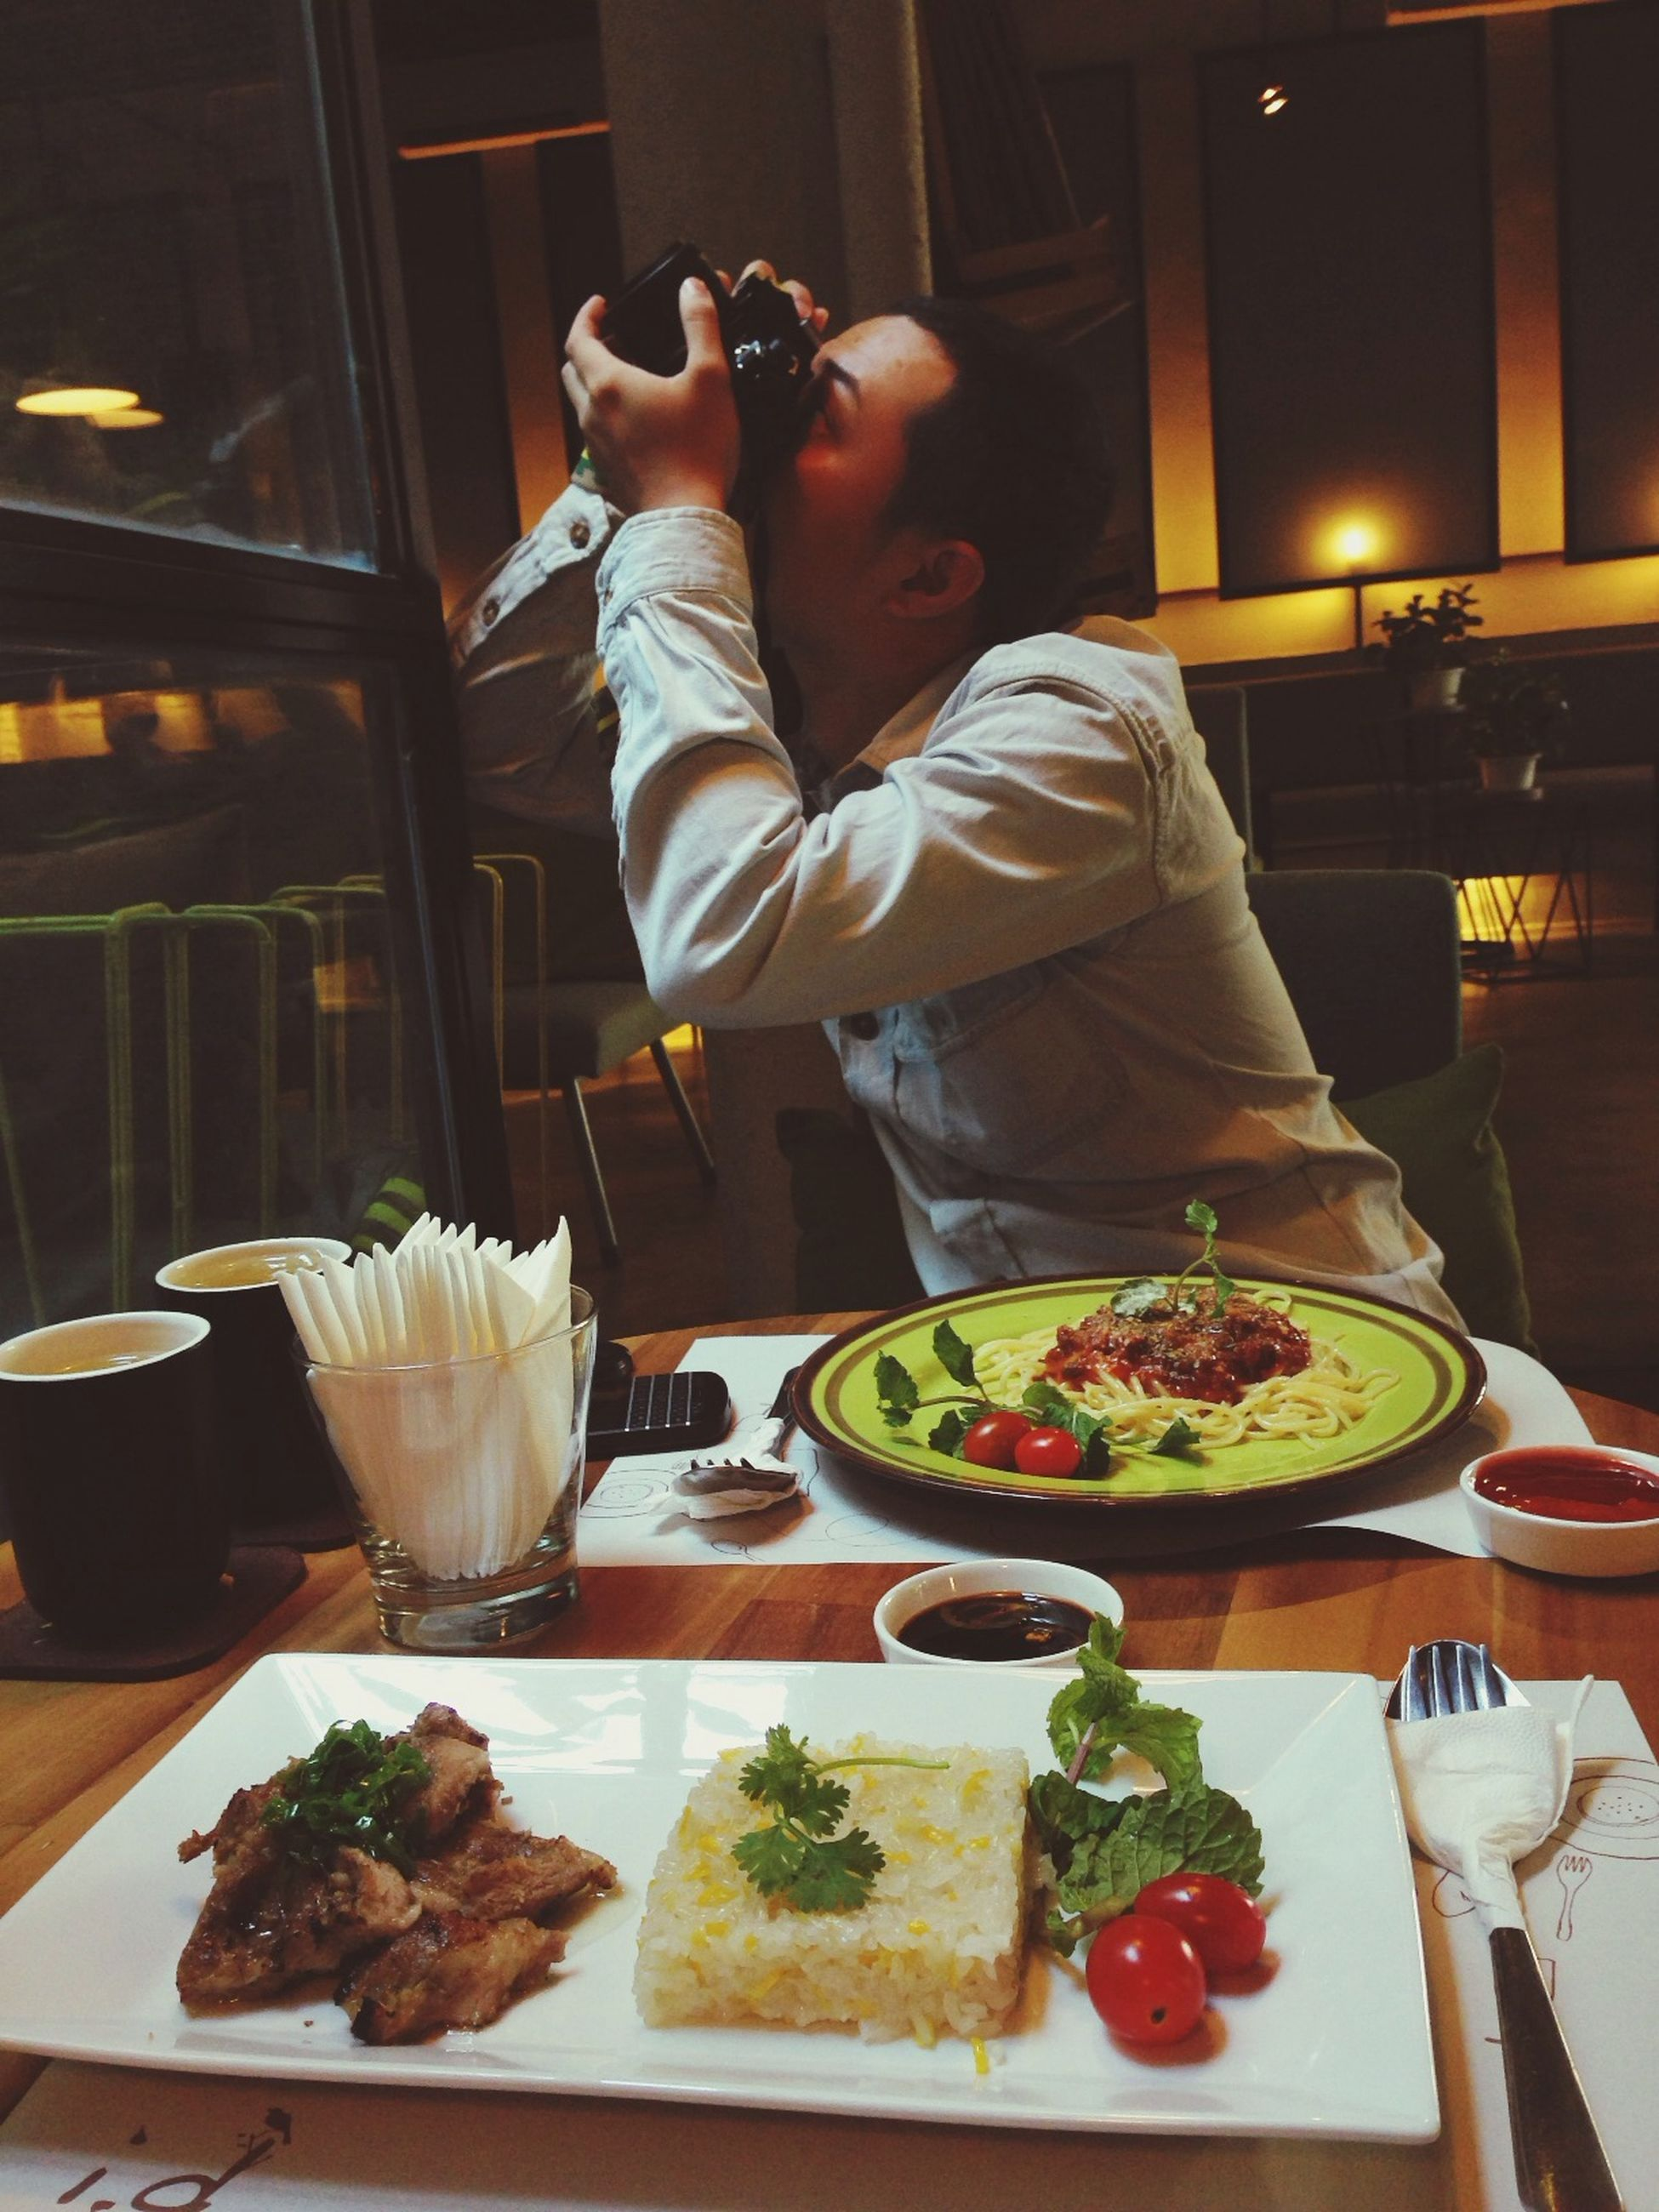 food and drink, food, indoors, men, lifestyles, freshness, standing, leisure activity, person, casual clothing, sitting, table, healthy eating, holding, vegetable, preparation, restaurant